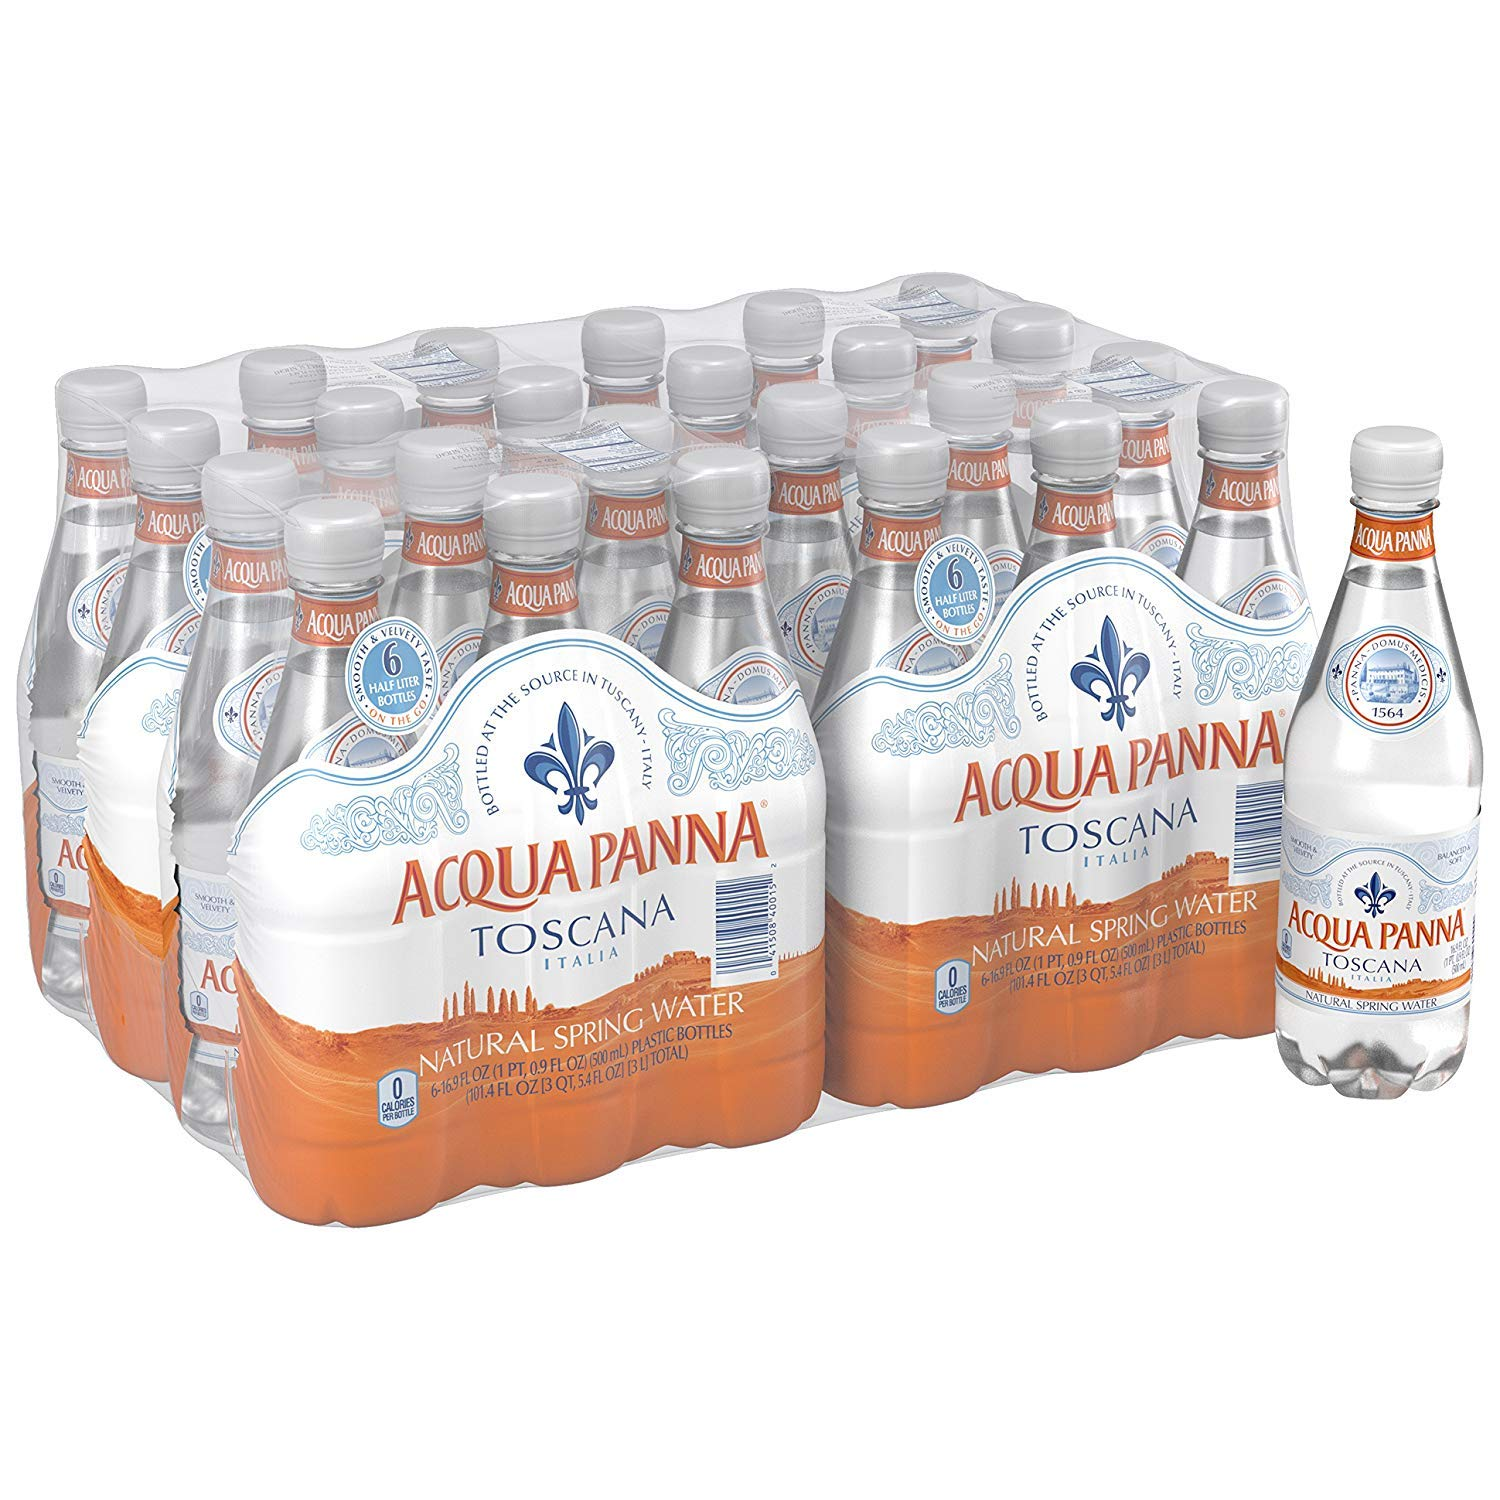 Acqua Panna FGHUEIG Natural Spring Water, 16.9-Ounce, 2 Cases of 24 Bottles by A (Image #1)